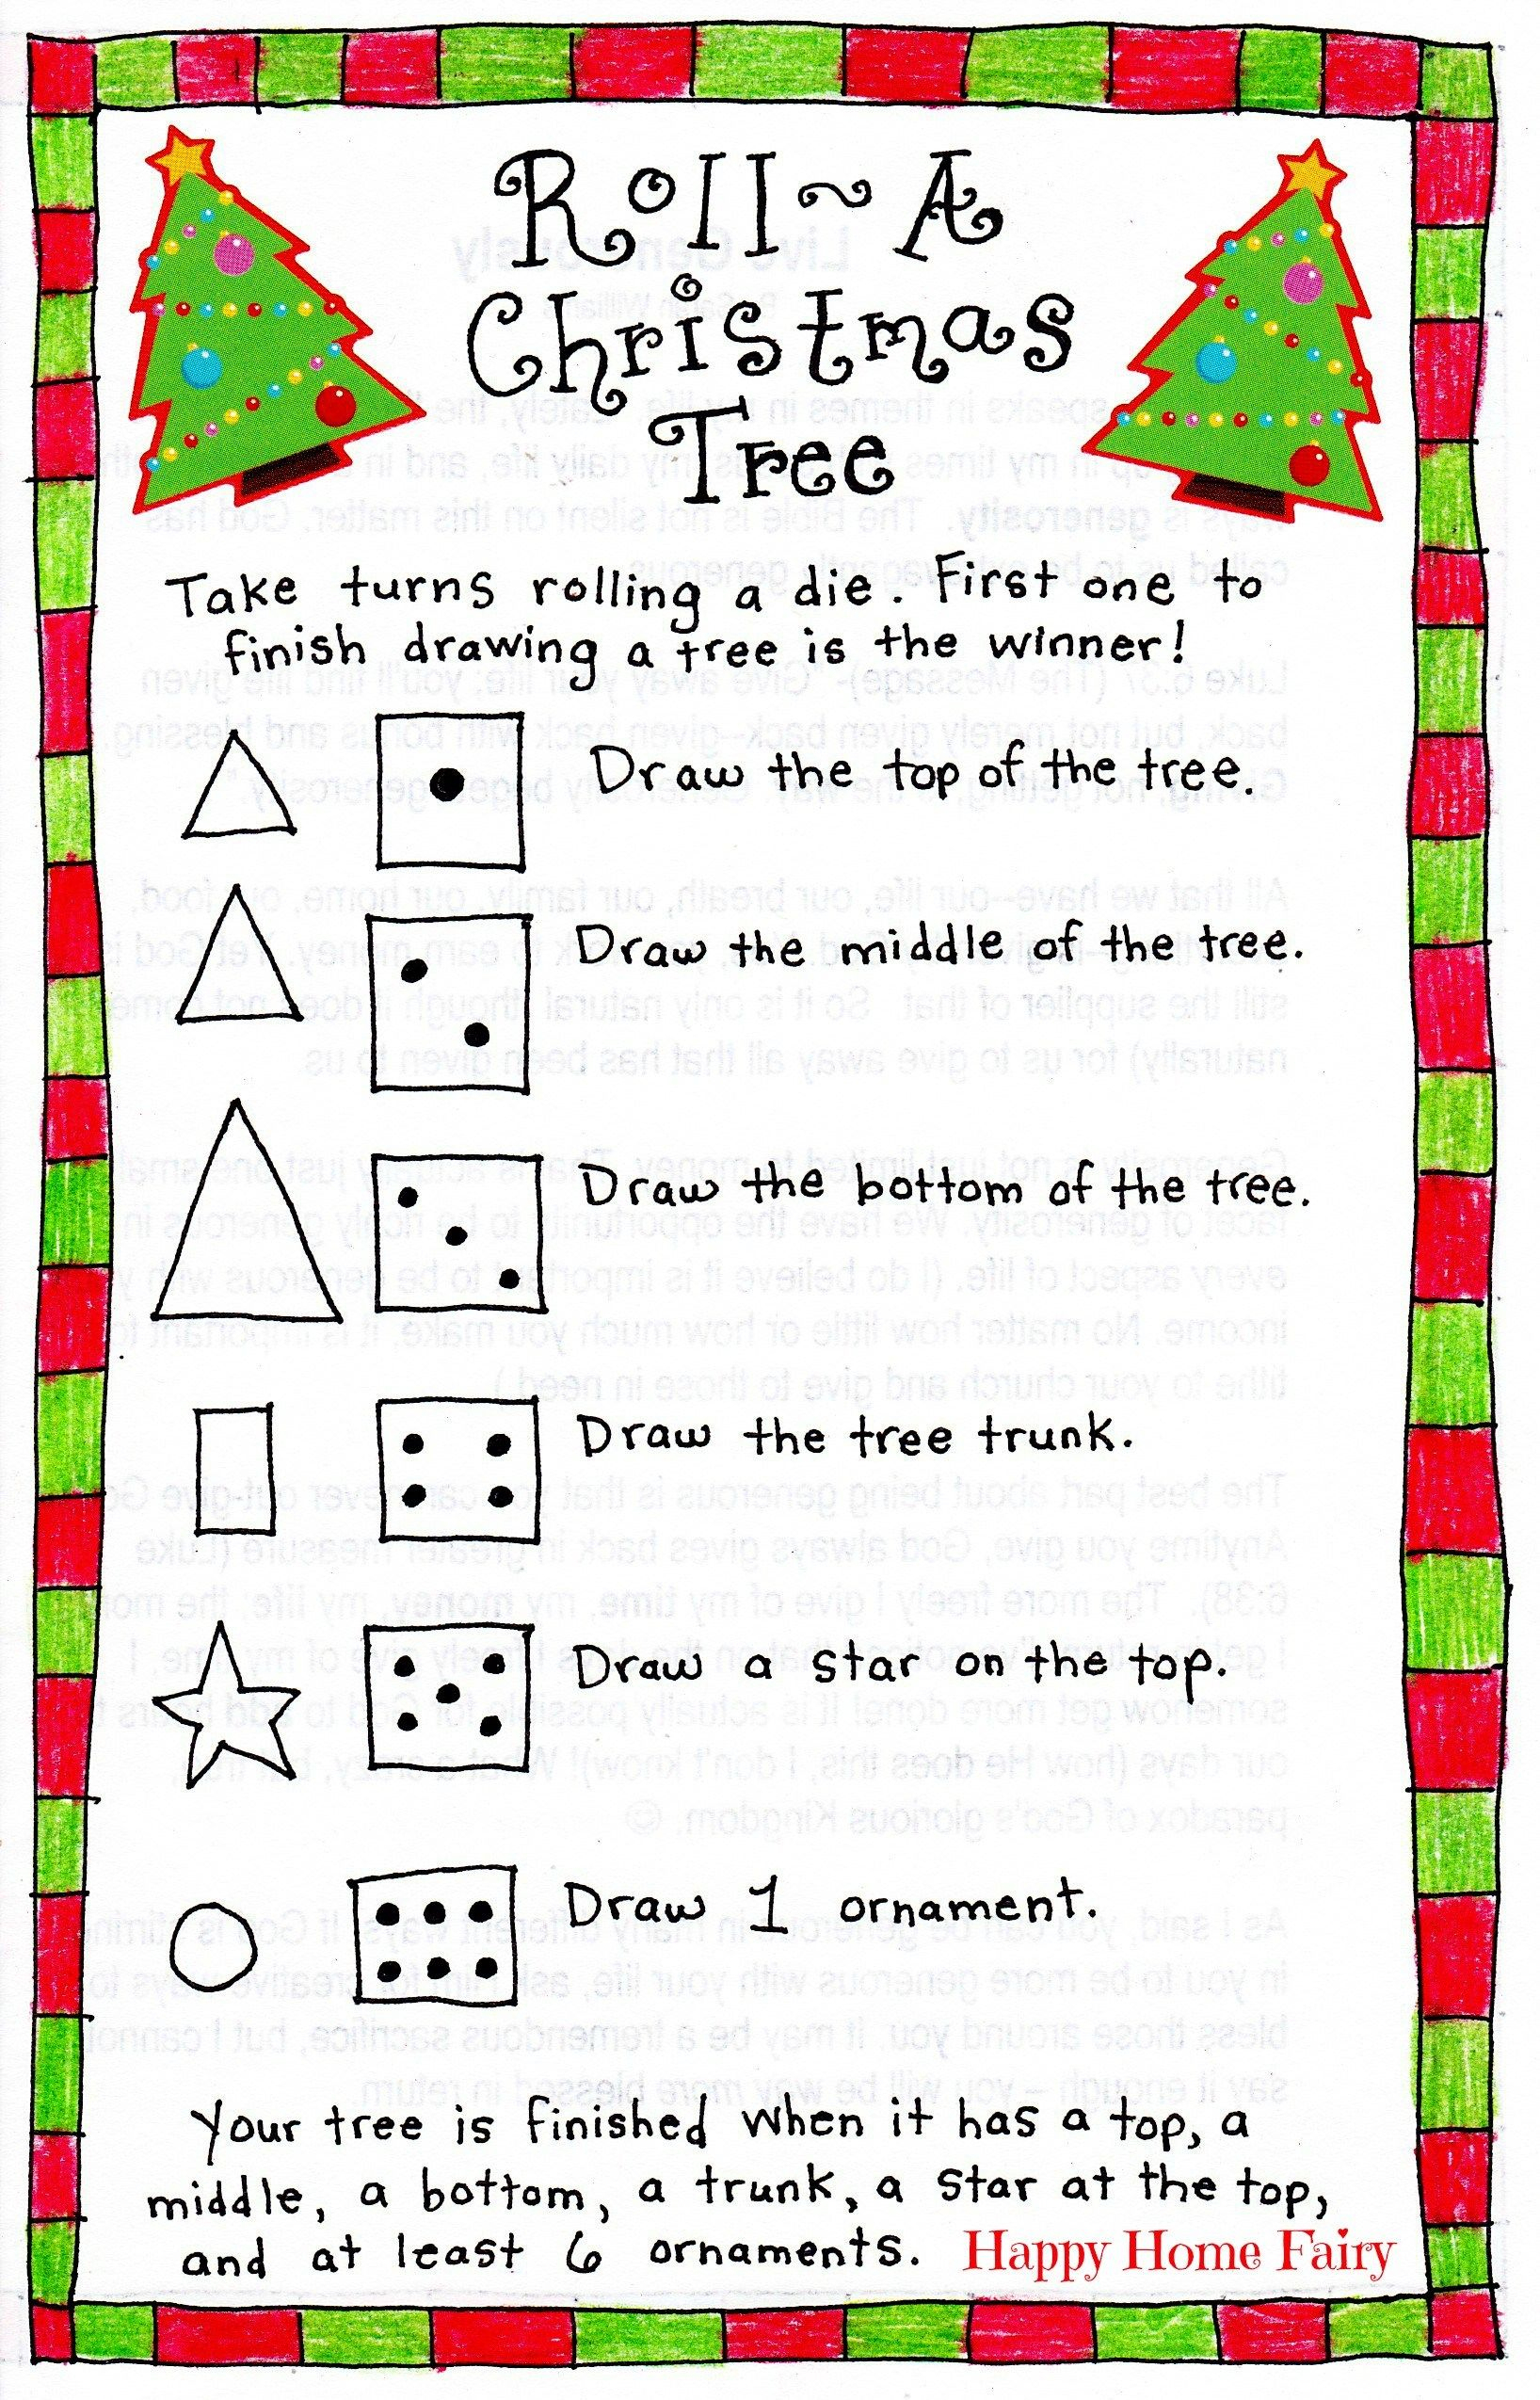 Roll-A-Christmas-Tree Game – Free Printable! | Christmas | Pinterest - Free Printable Christmas Puzzles And Games